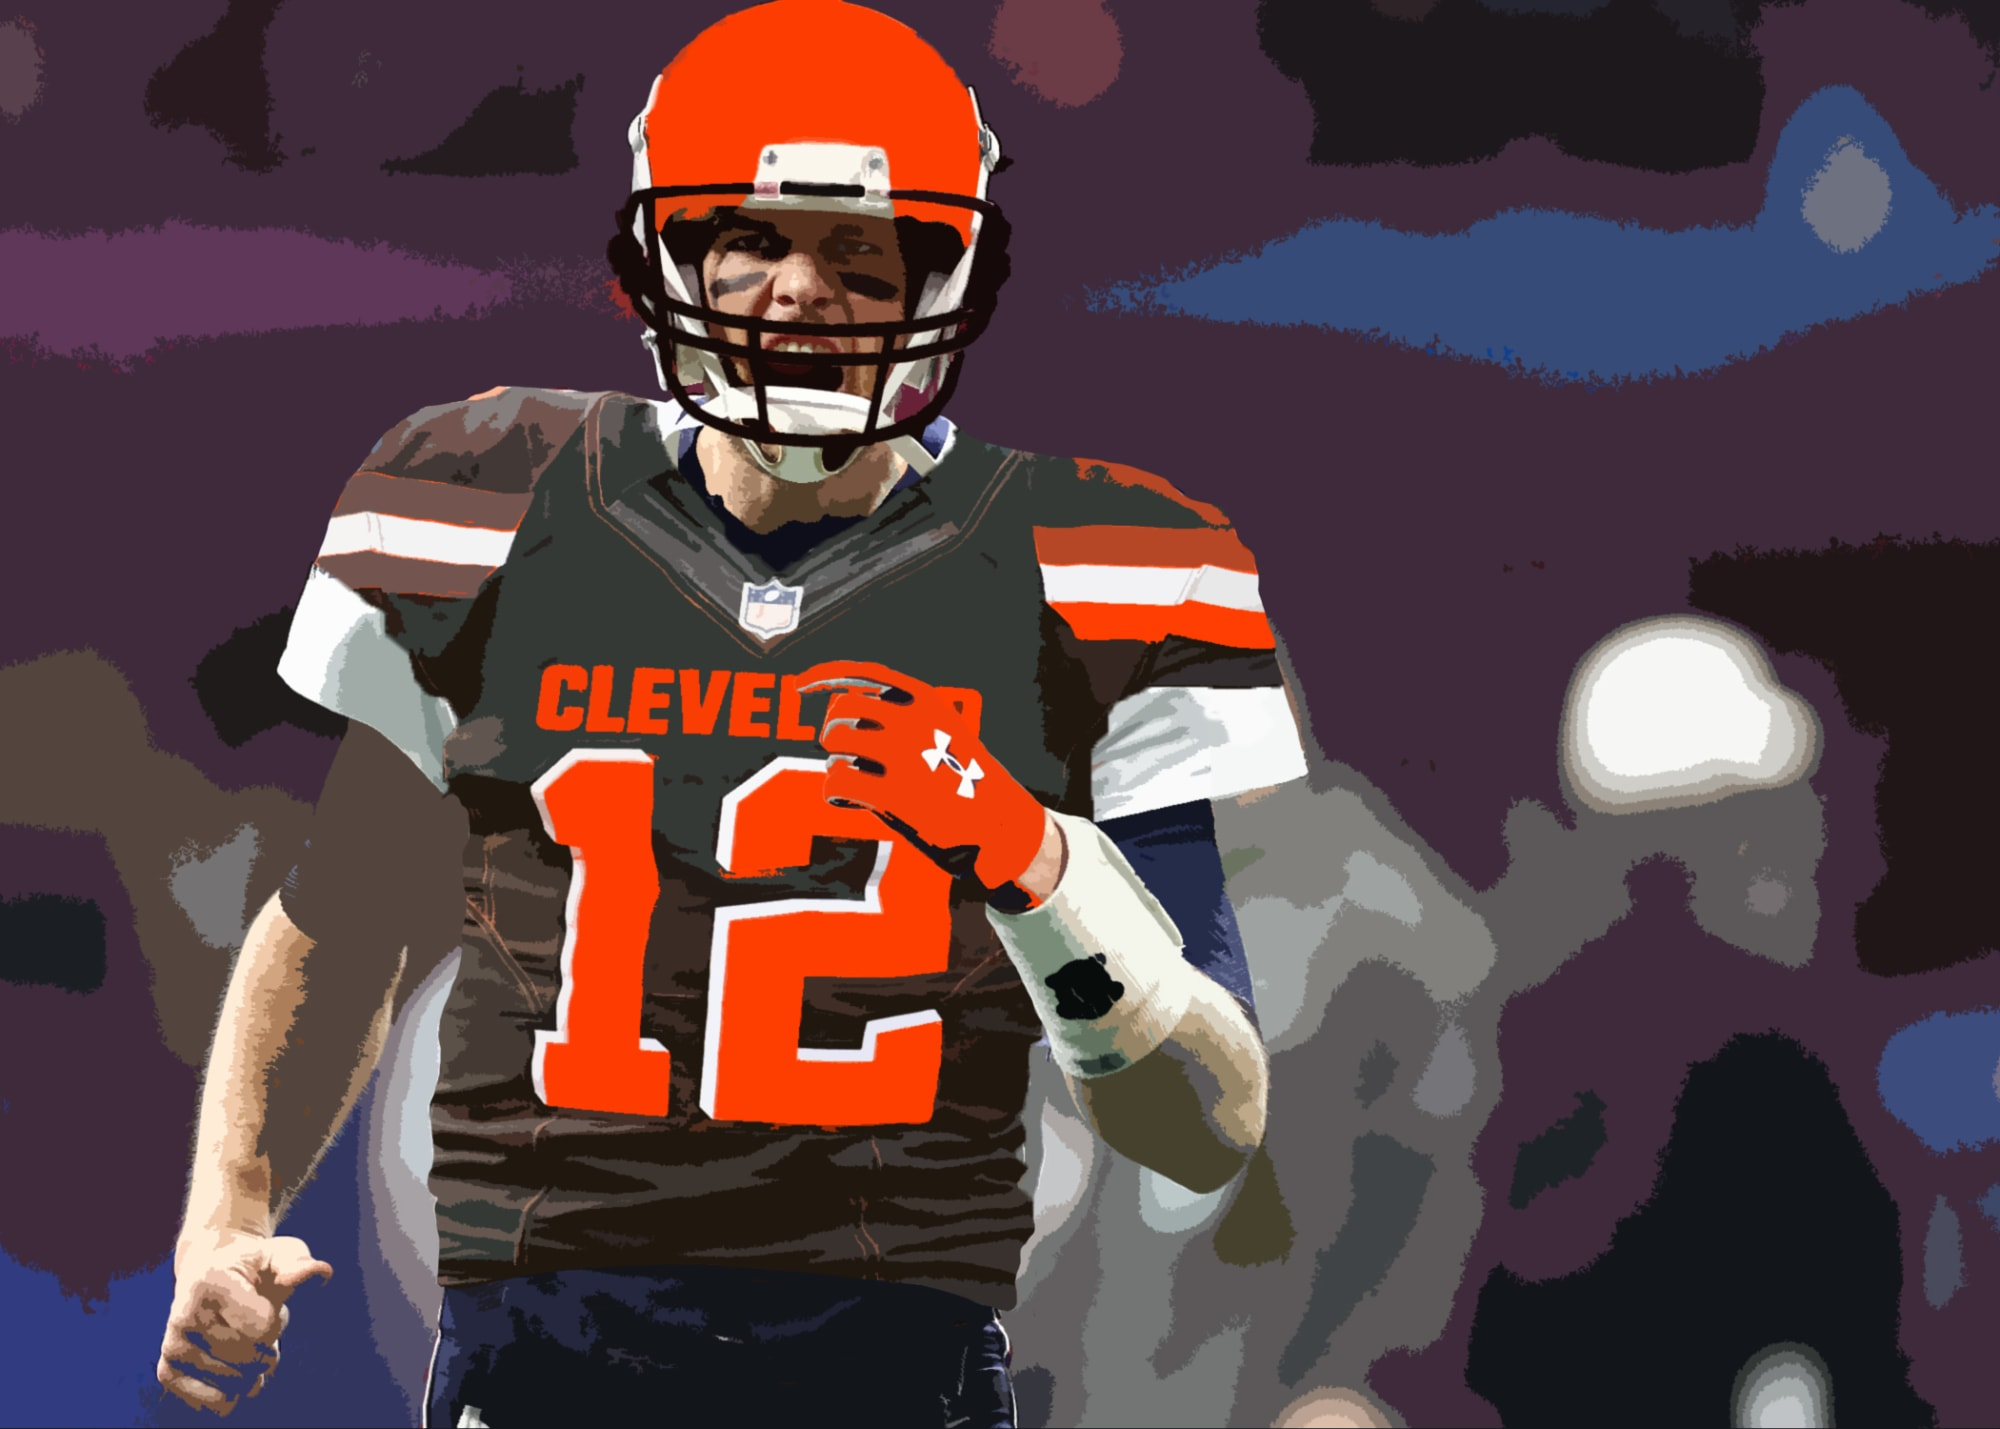 Tom Brady could've built a dynasty with the Cleveland Browns